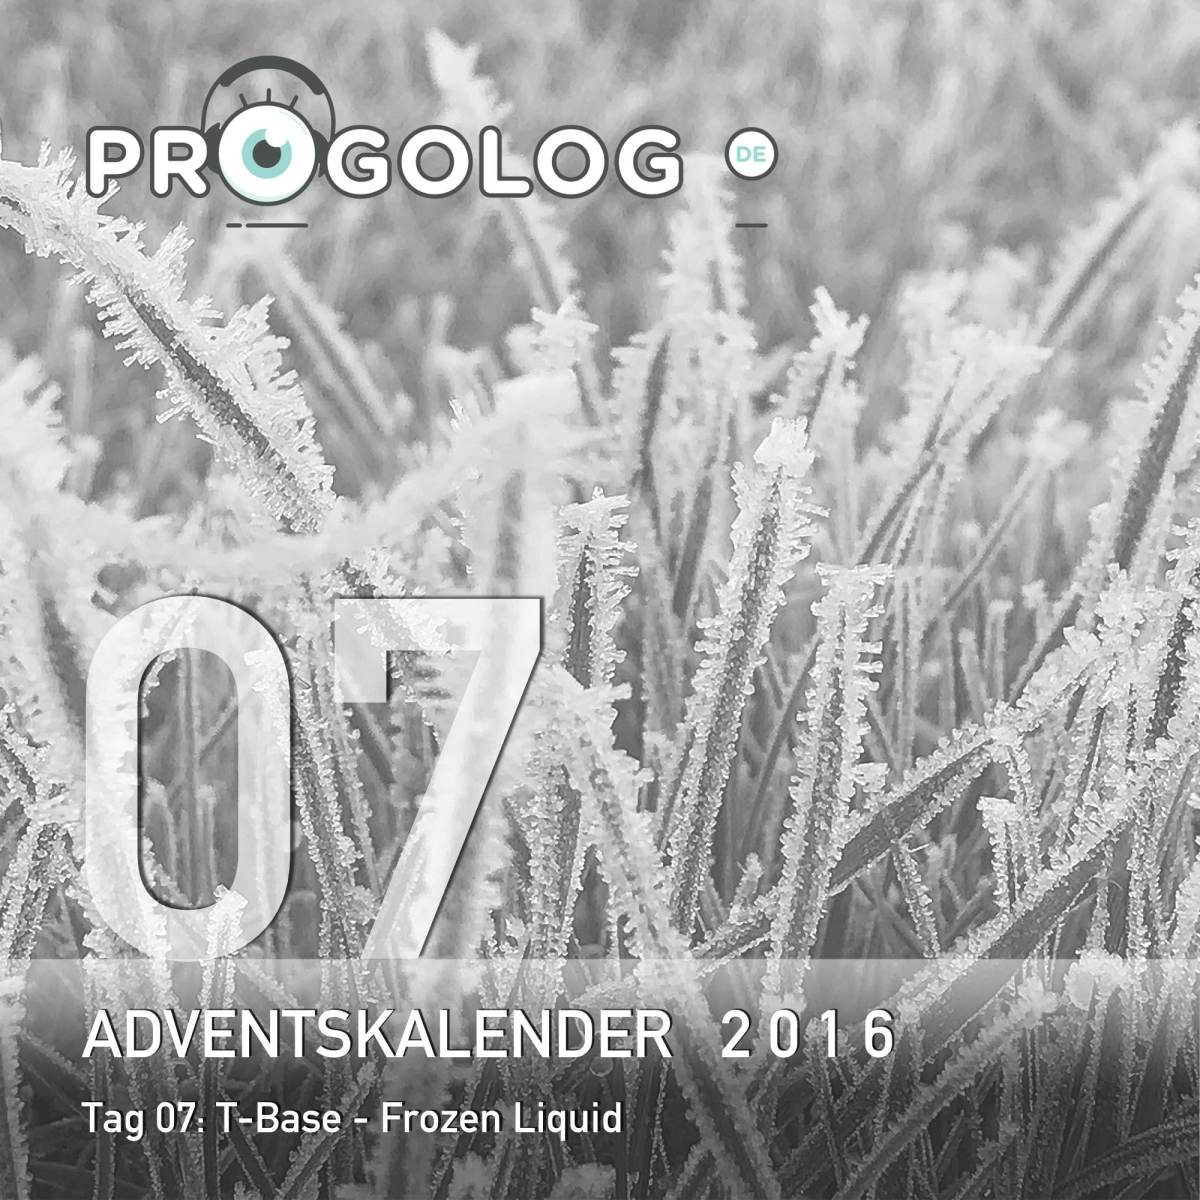 Adventskalender 2016 – Tag 07: T-Base - Frozen Liquid